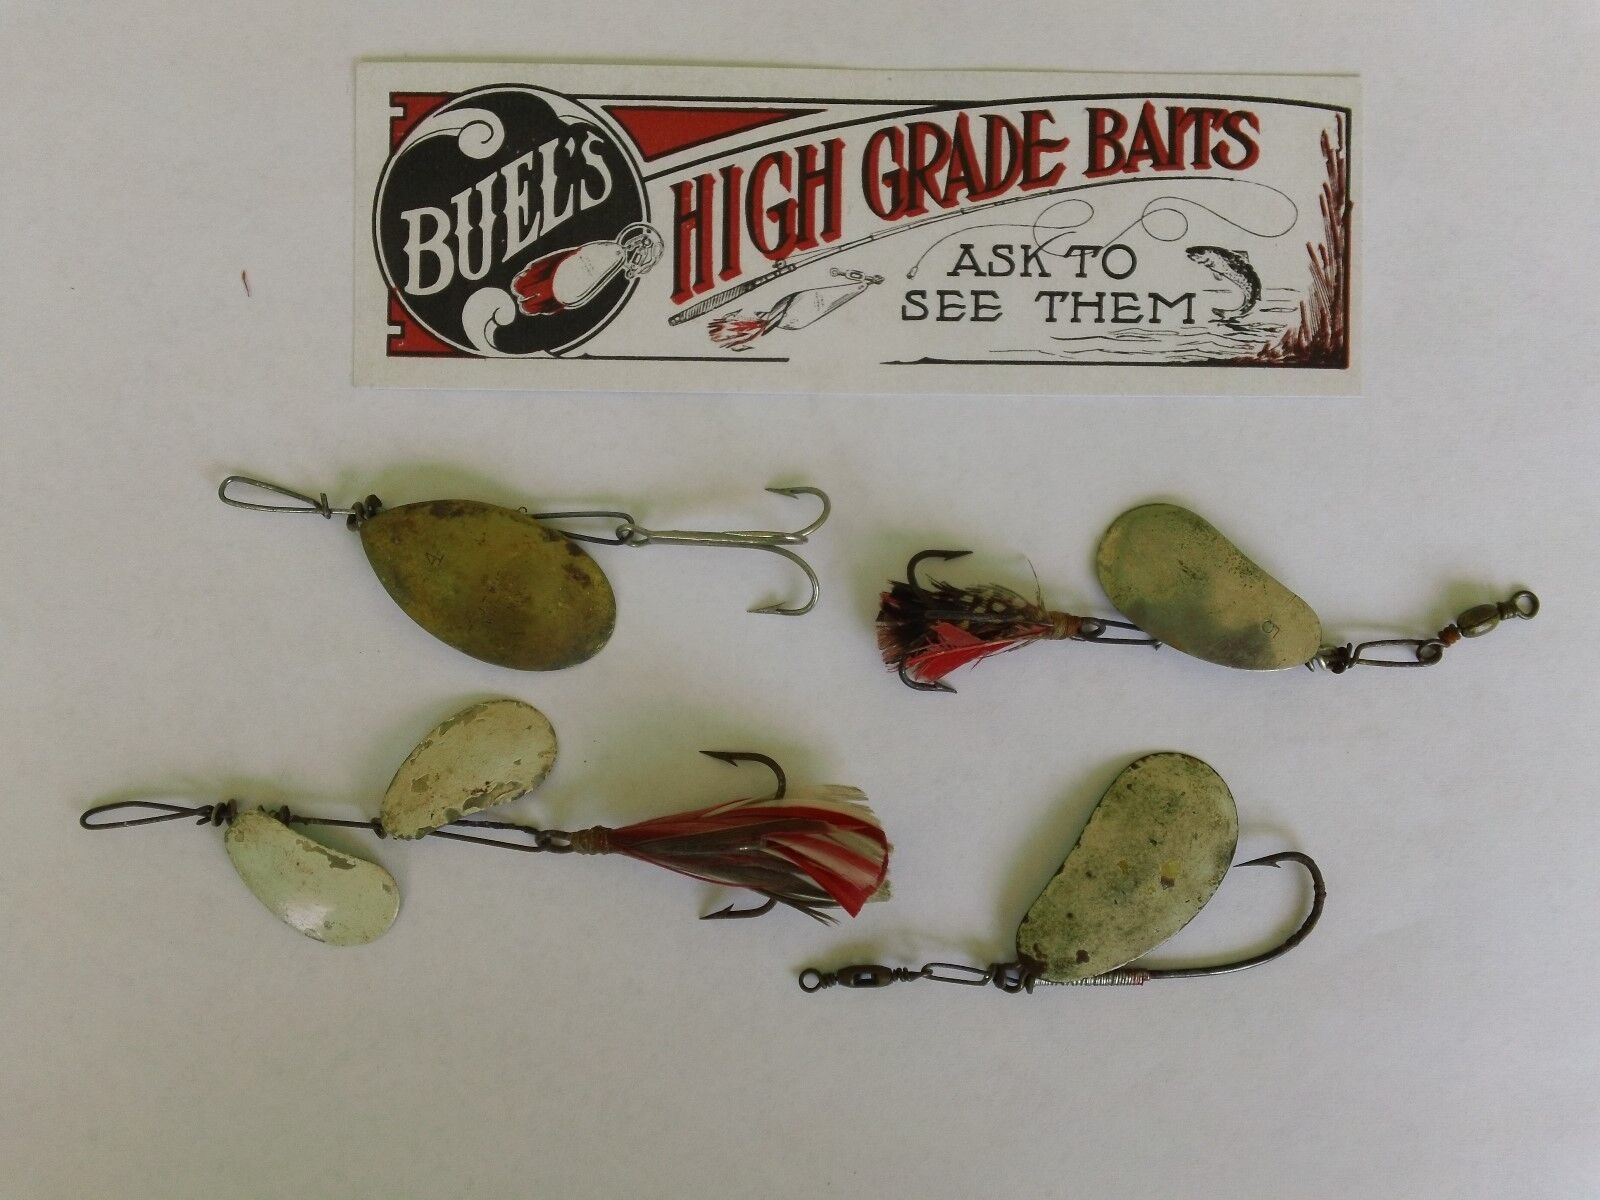 RARE VINTAGE J. T. BUEL SPINNER LURES-4 LURES-WHITEHALL, N. Y.-IN VERY GOOD COND